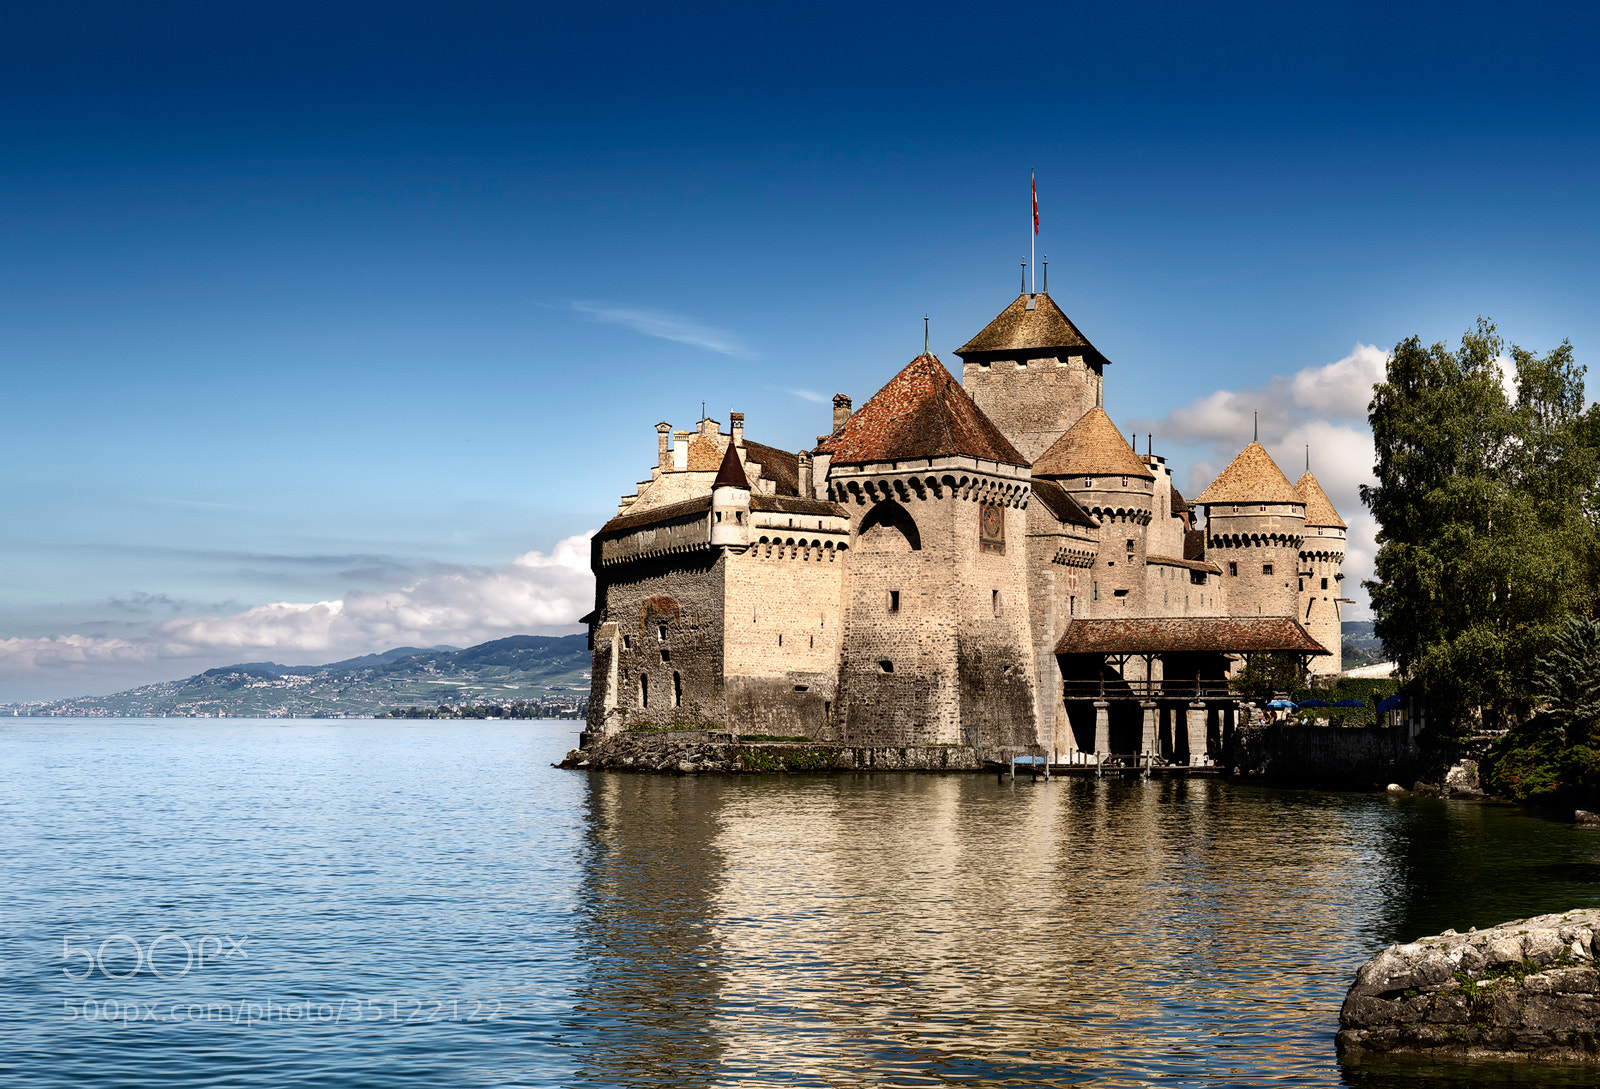 Photograph Château de Chillon by José Antonio Sánchez on 500px